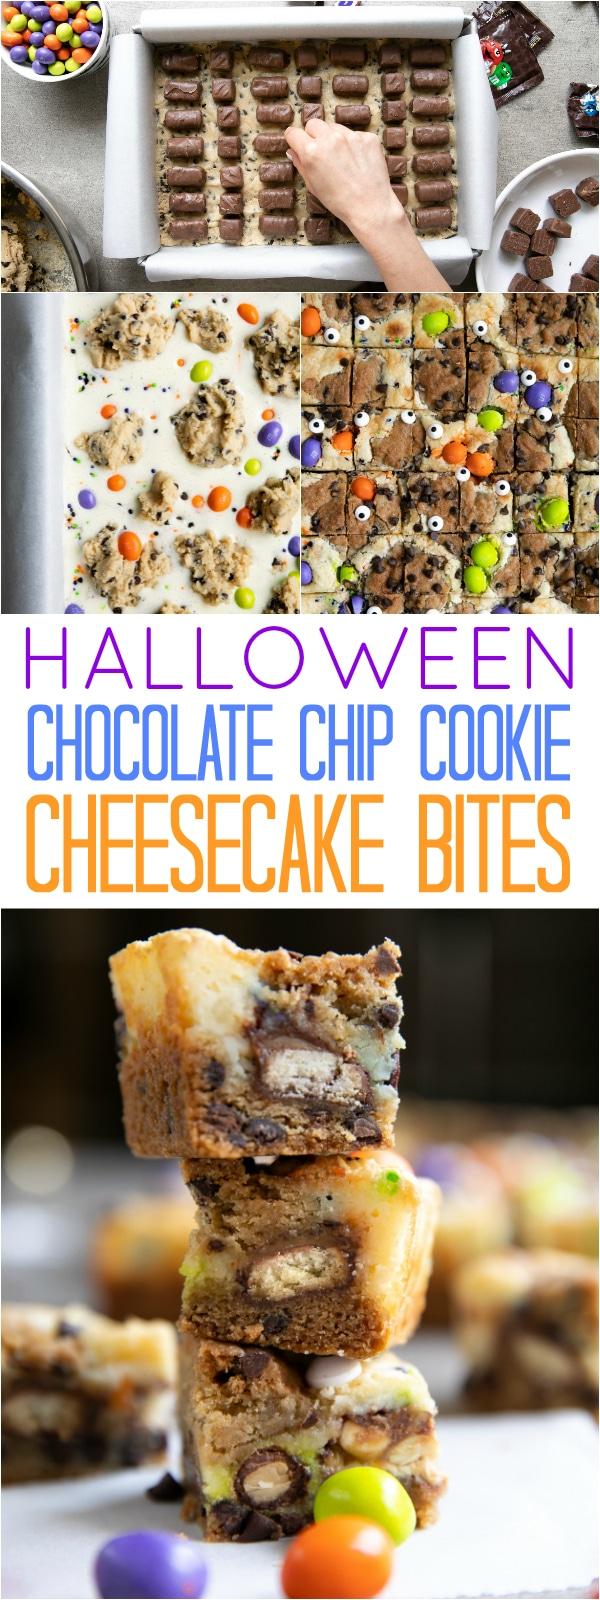 Halloween Chocolate Chip Cookie Cheesecake Bites- Made with homemade chocolate chip cookie dough, cheesecake, Fun Size M&M'S®, SNICKERS® & TWIX®, these delicious Cheesecake Bites are guaranteed to be the hit of any party. #ad #halloween #twix #snickers #dessert #halloweentreats #cheesecake #cookies | For this recipe and more visit, https://theforkedspoon.com/chocolate-chip-cookie-cheesecake/